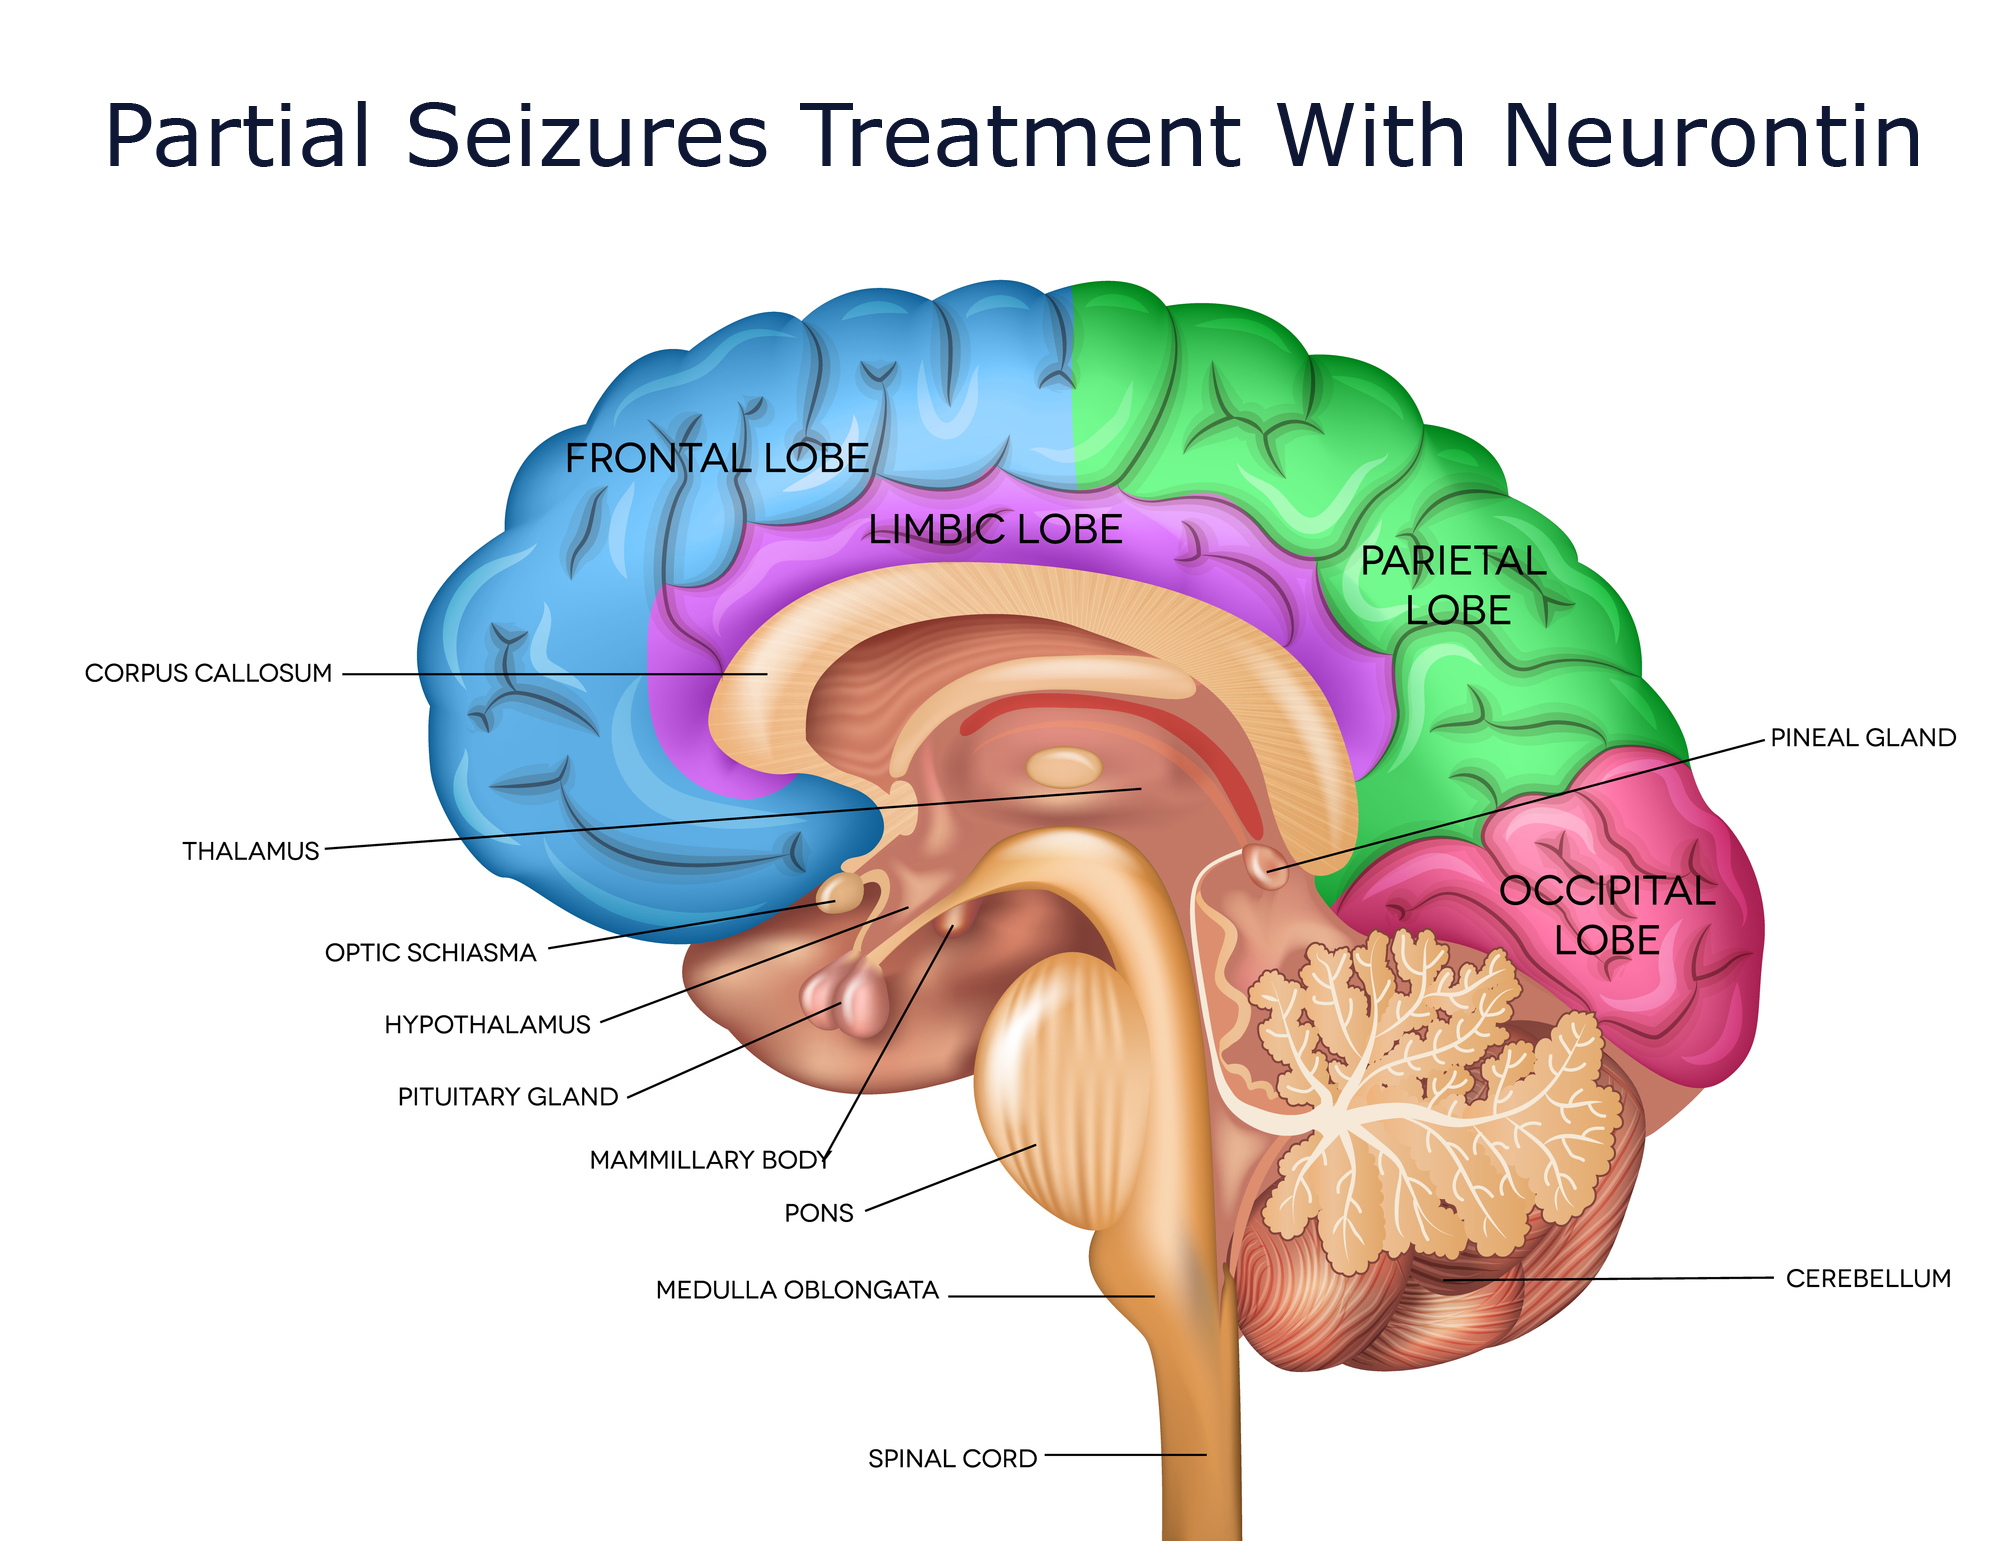 Partial Seizures Treatment With Neurontin